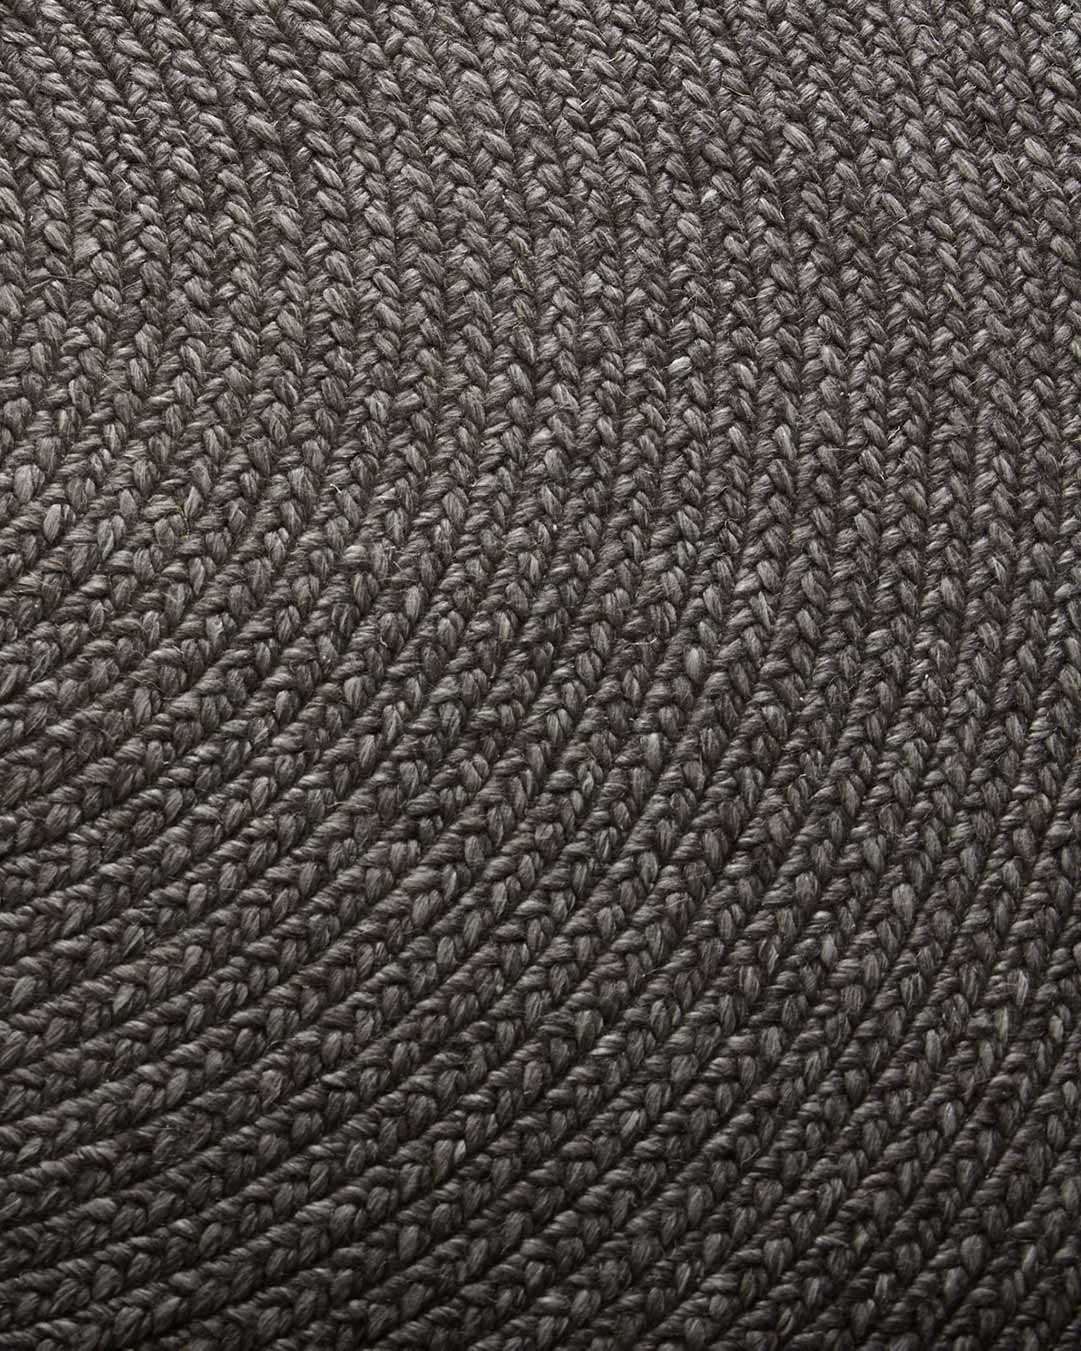 Close up view of Glenmore round rug in charcoal colour